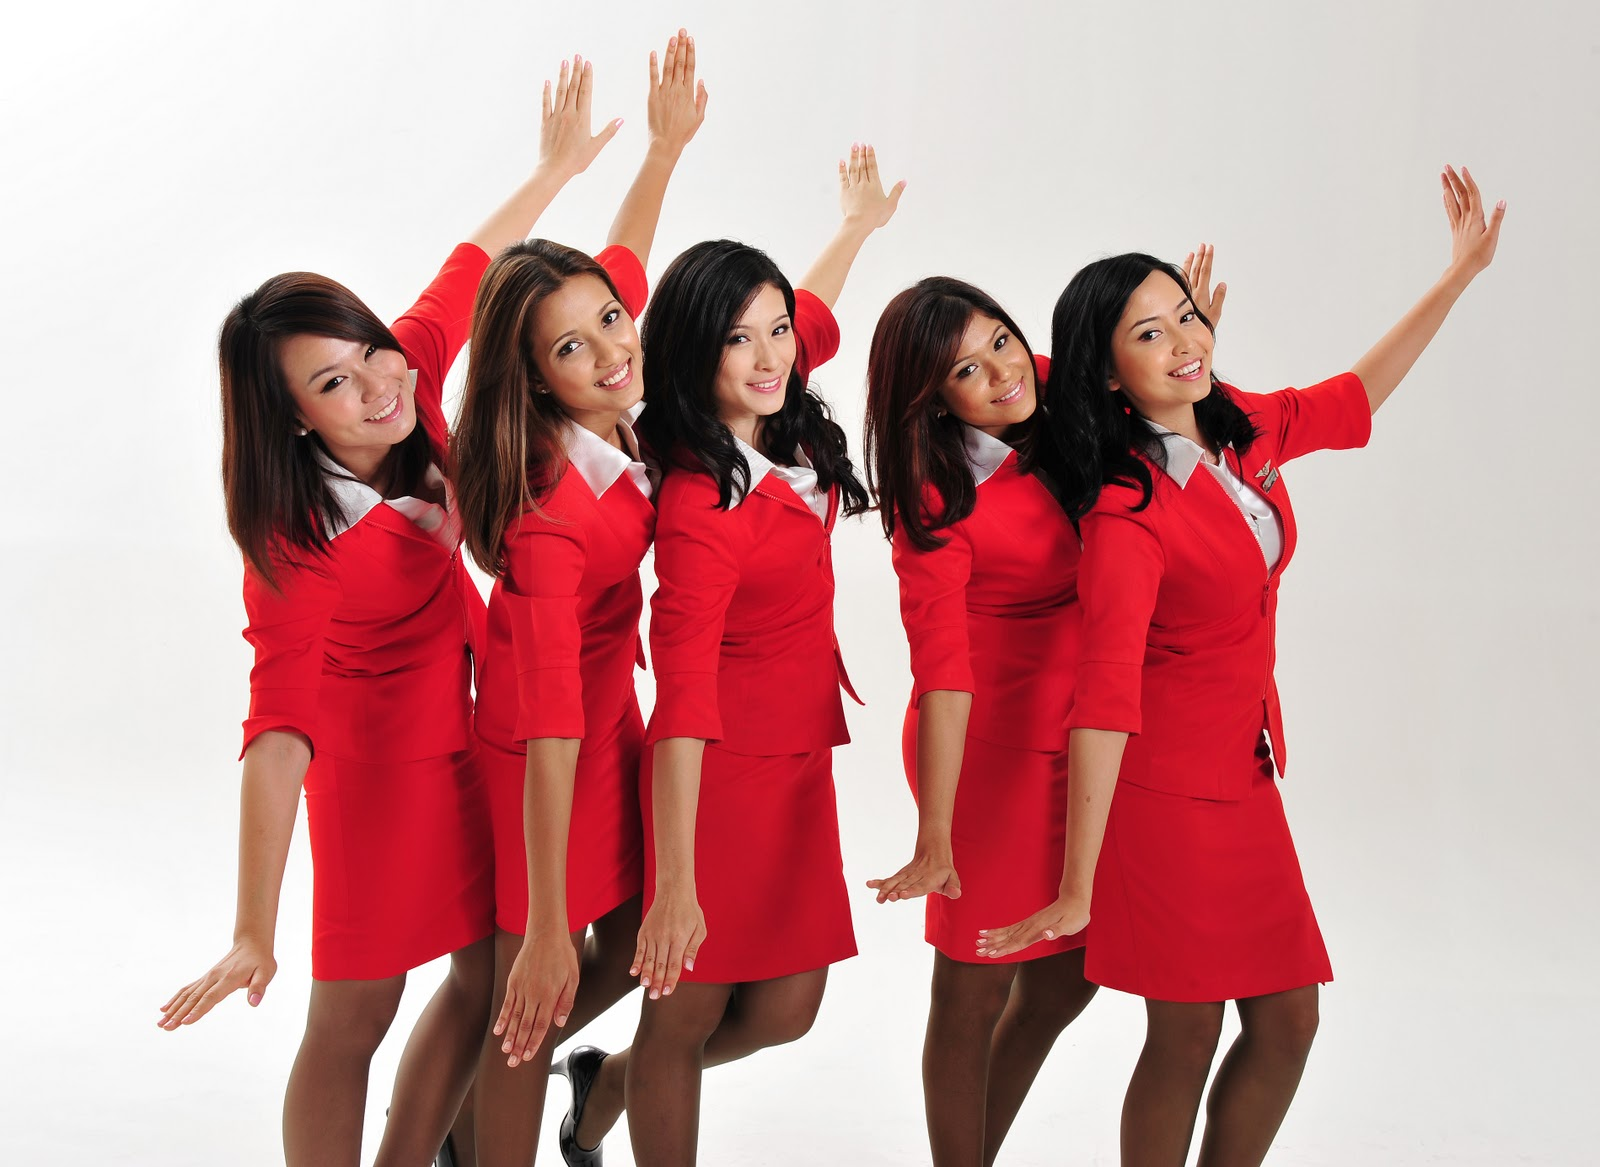 [Tangerang] AirAsia Indonesia Flight Attendant Recruitment April 2014